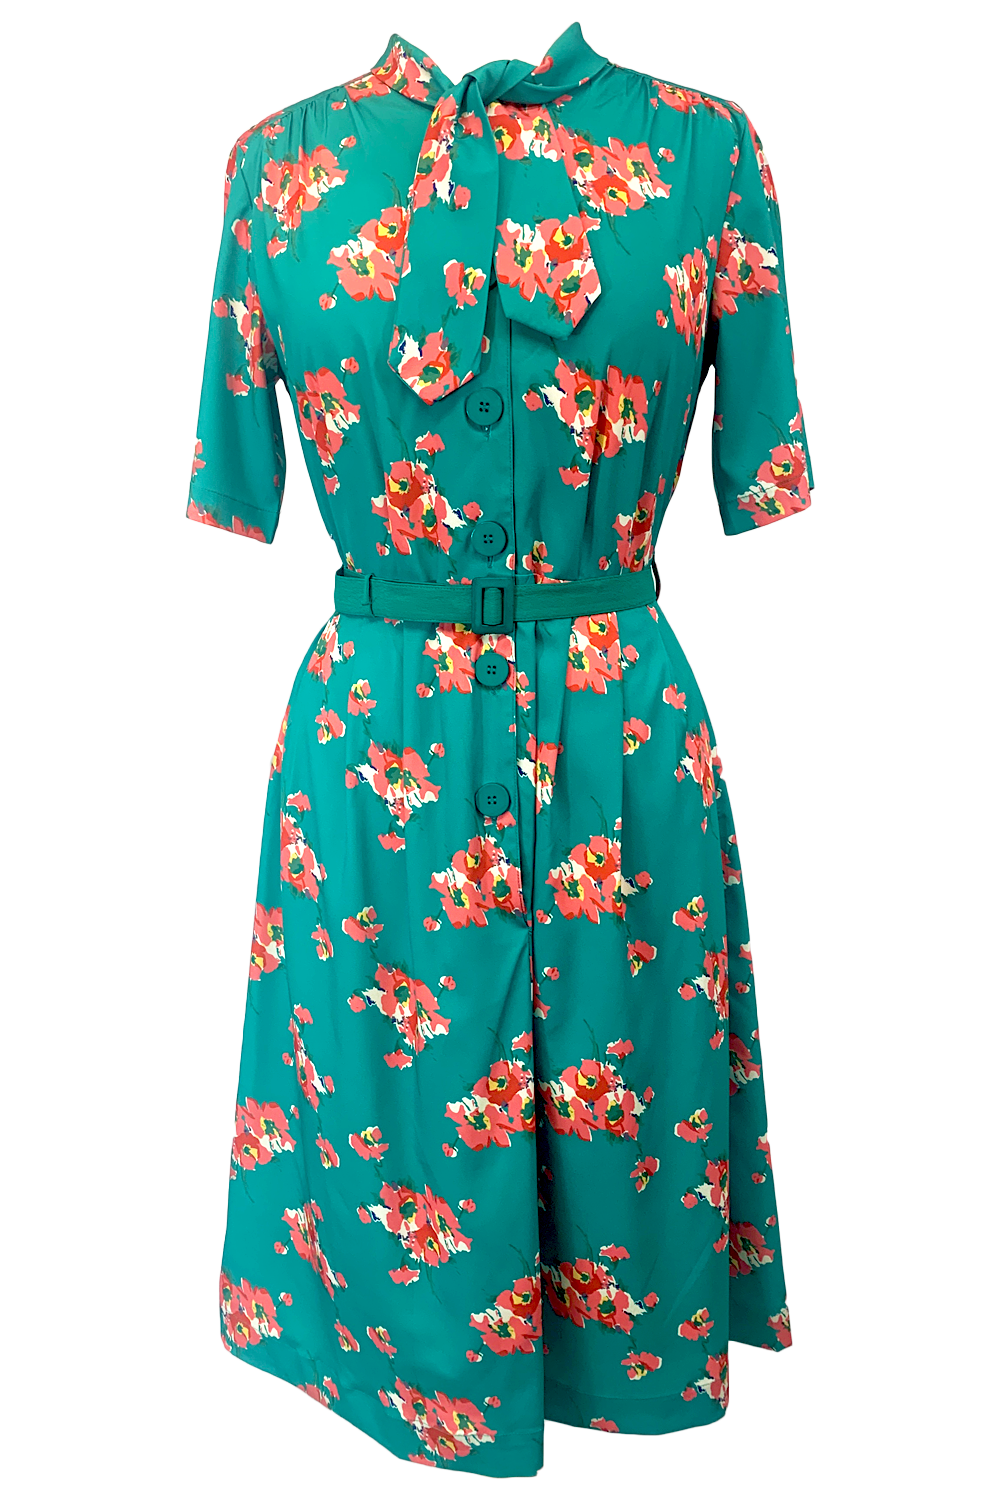 Vintage 50s Dresses: Best 1950s Dress Styles Casidy Pussy Bow Dress in Green Floral Perfect 1950s Style .. AW19 £49.00 AT vintagedancer.com